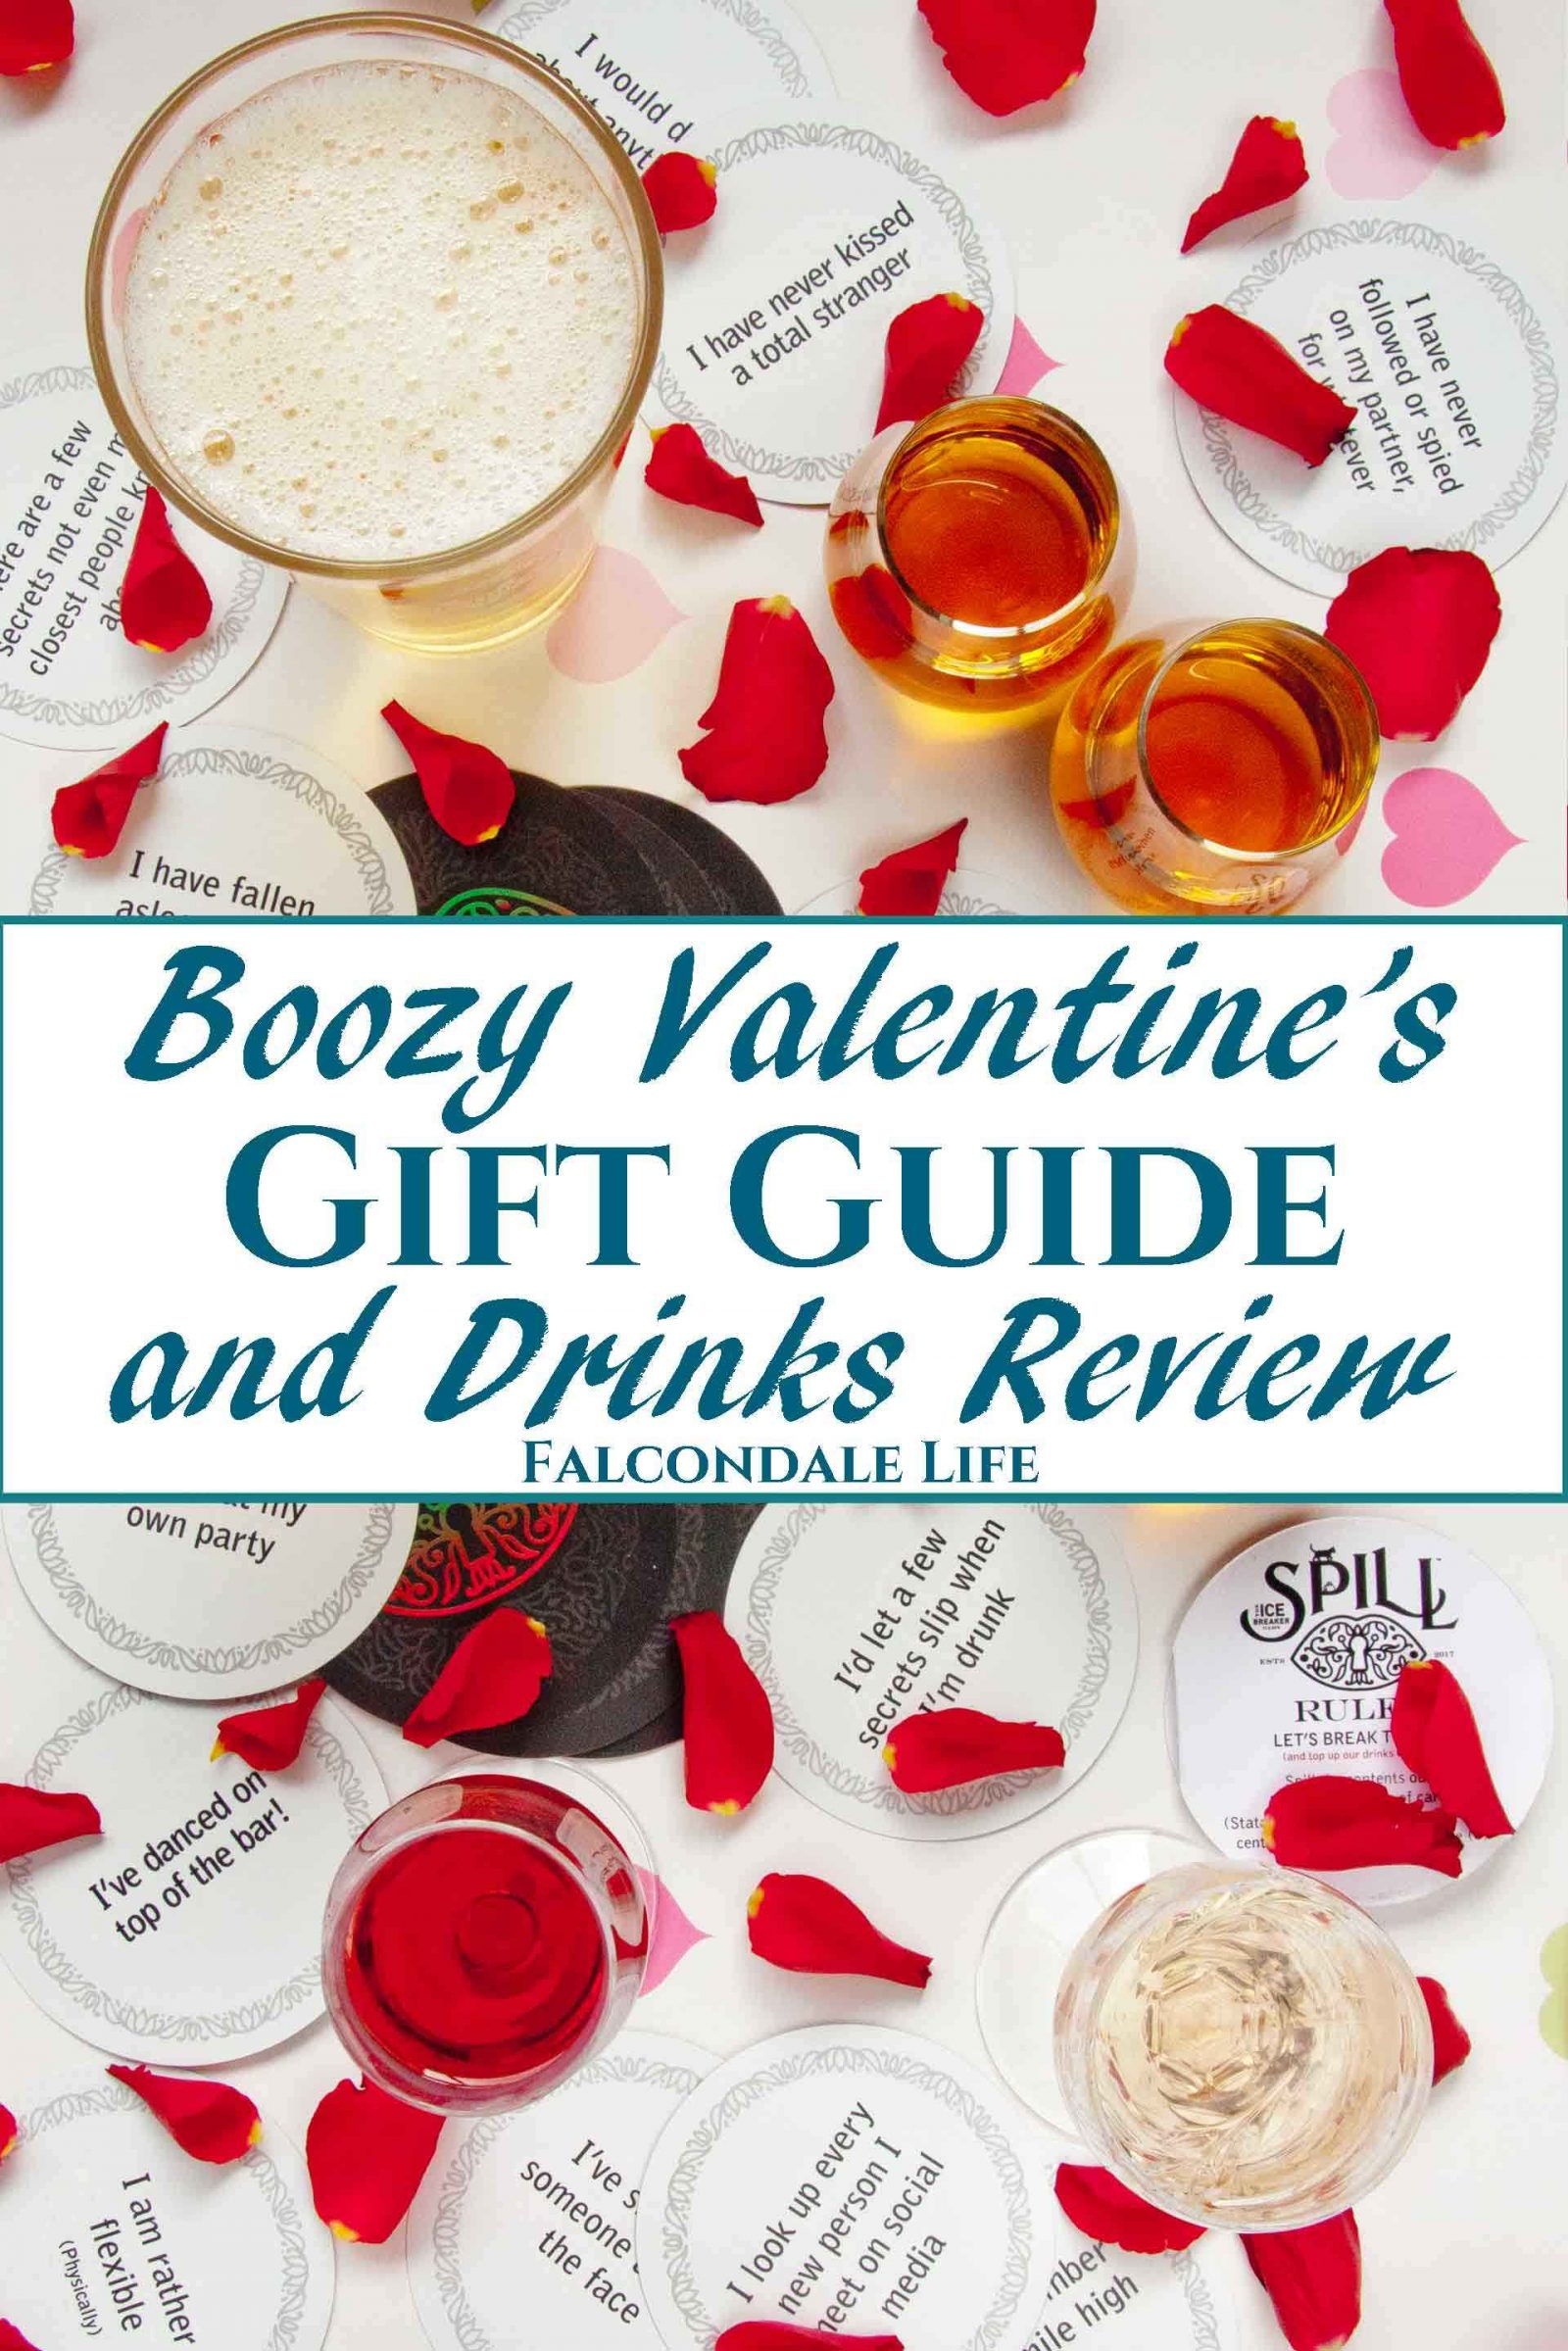 Flatlay of drinks in glasses, drinking game cards, rose petals and hearts. Boozy Valentine's Gift Guide and Drinks Review on Falcondale Life blog. Unusual alcohol and gifts for drinkers on Valentine's day. Get something for him or her which is more interesting that just chocolate and wine. On test: Liqueurs, whisky, brewing kit, drinking game. Boozy gifts reviewed by FalcondaleJan.